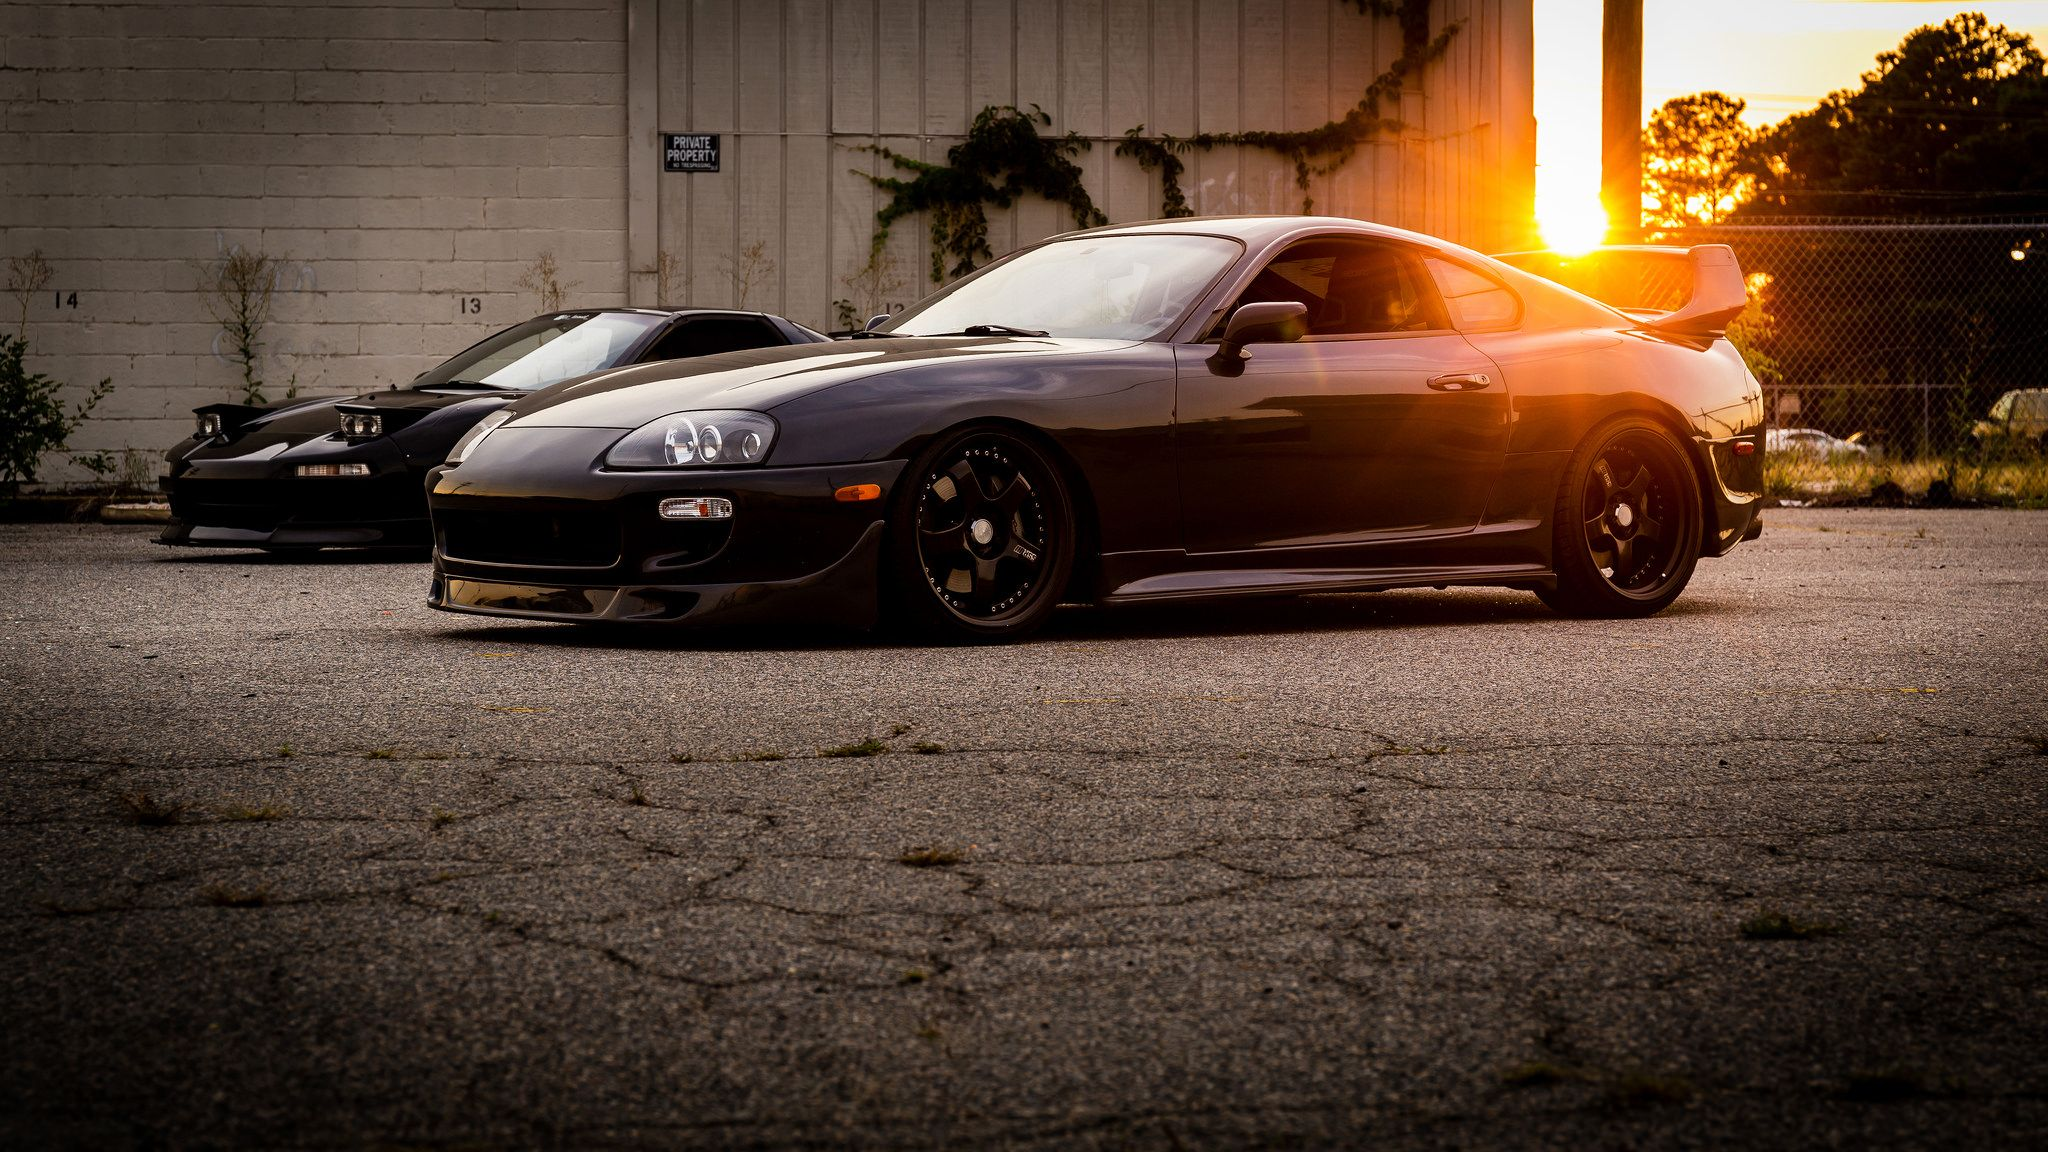 Toyota Supra Wallpaper WallDevil | HD Wallpapers | Pinterest | Toyota Supra,  Hd Wallpaper And Wallpaper